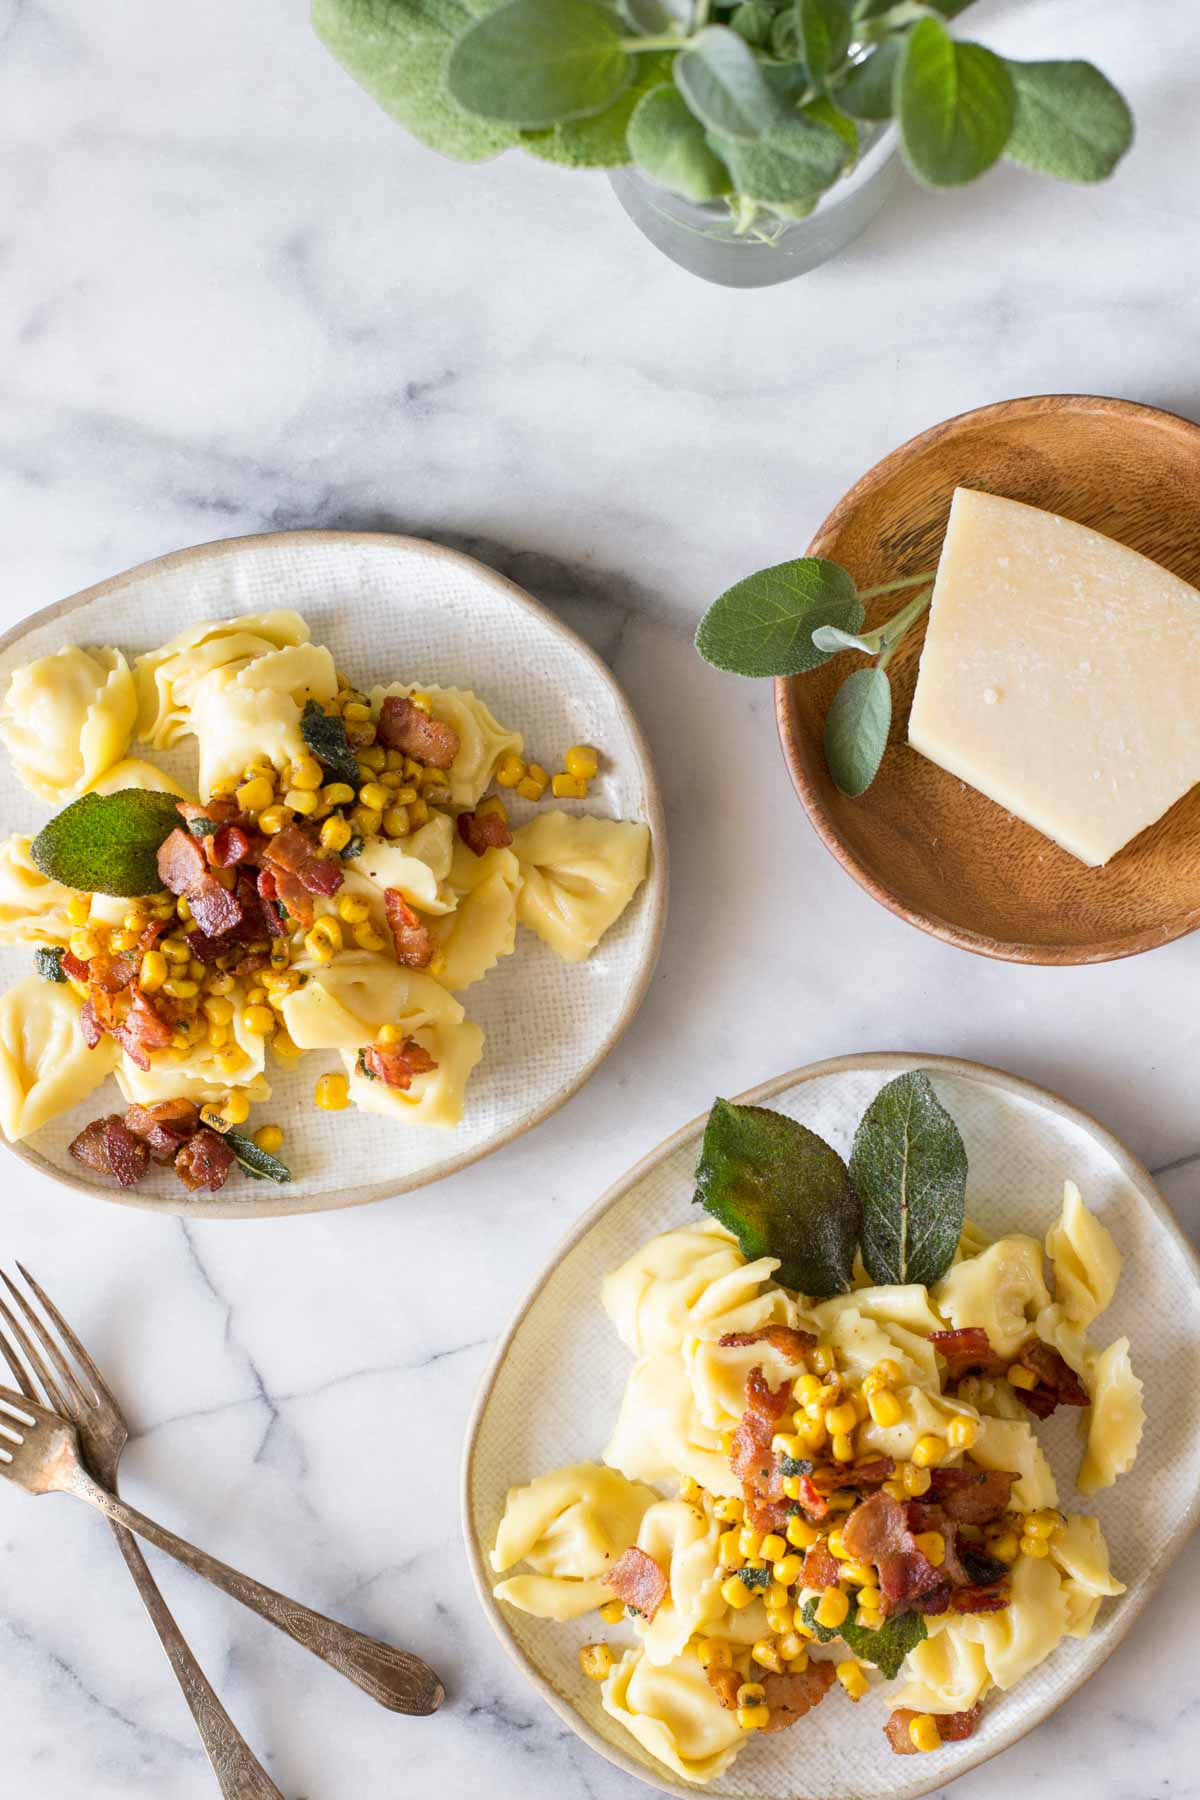 Overhead view of two plates of Creamy Tortellini With Bacon and Corn and a wooden plate with a block of Parmesan cheese, on a marble background.